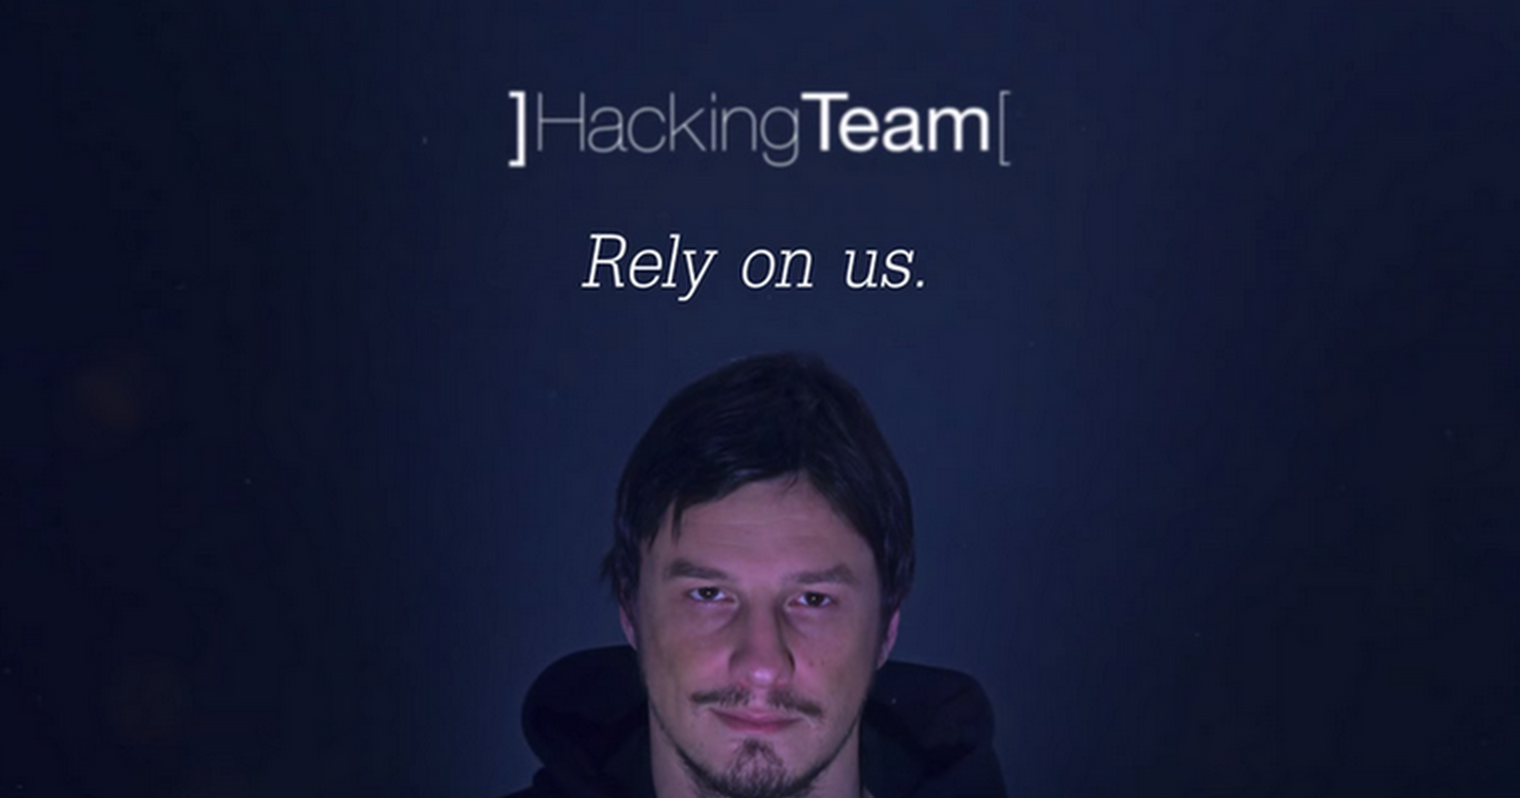 Researcher lashes out at Hacking Team over open-source code discovery